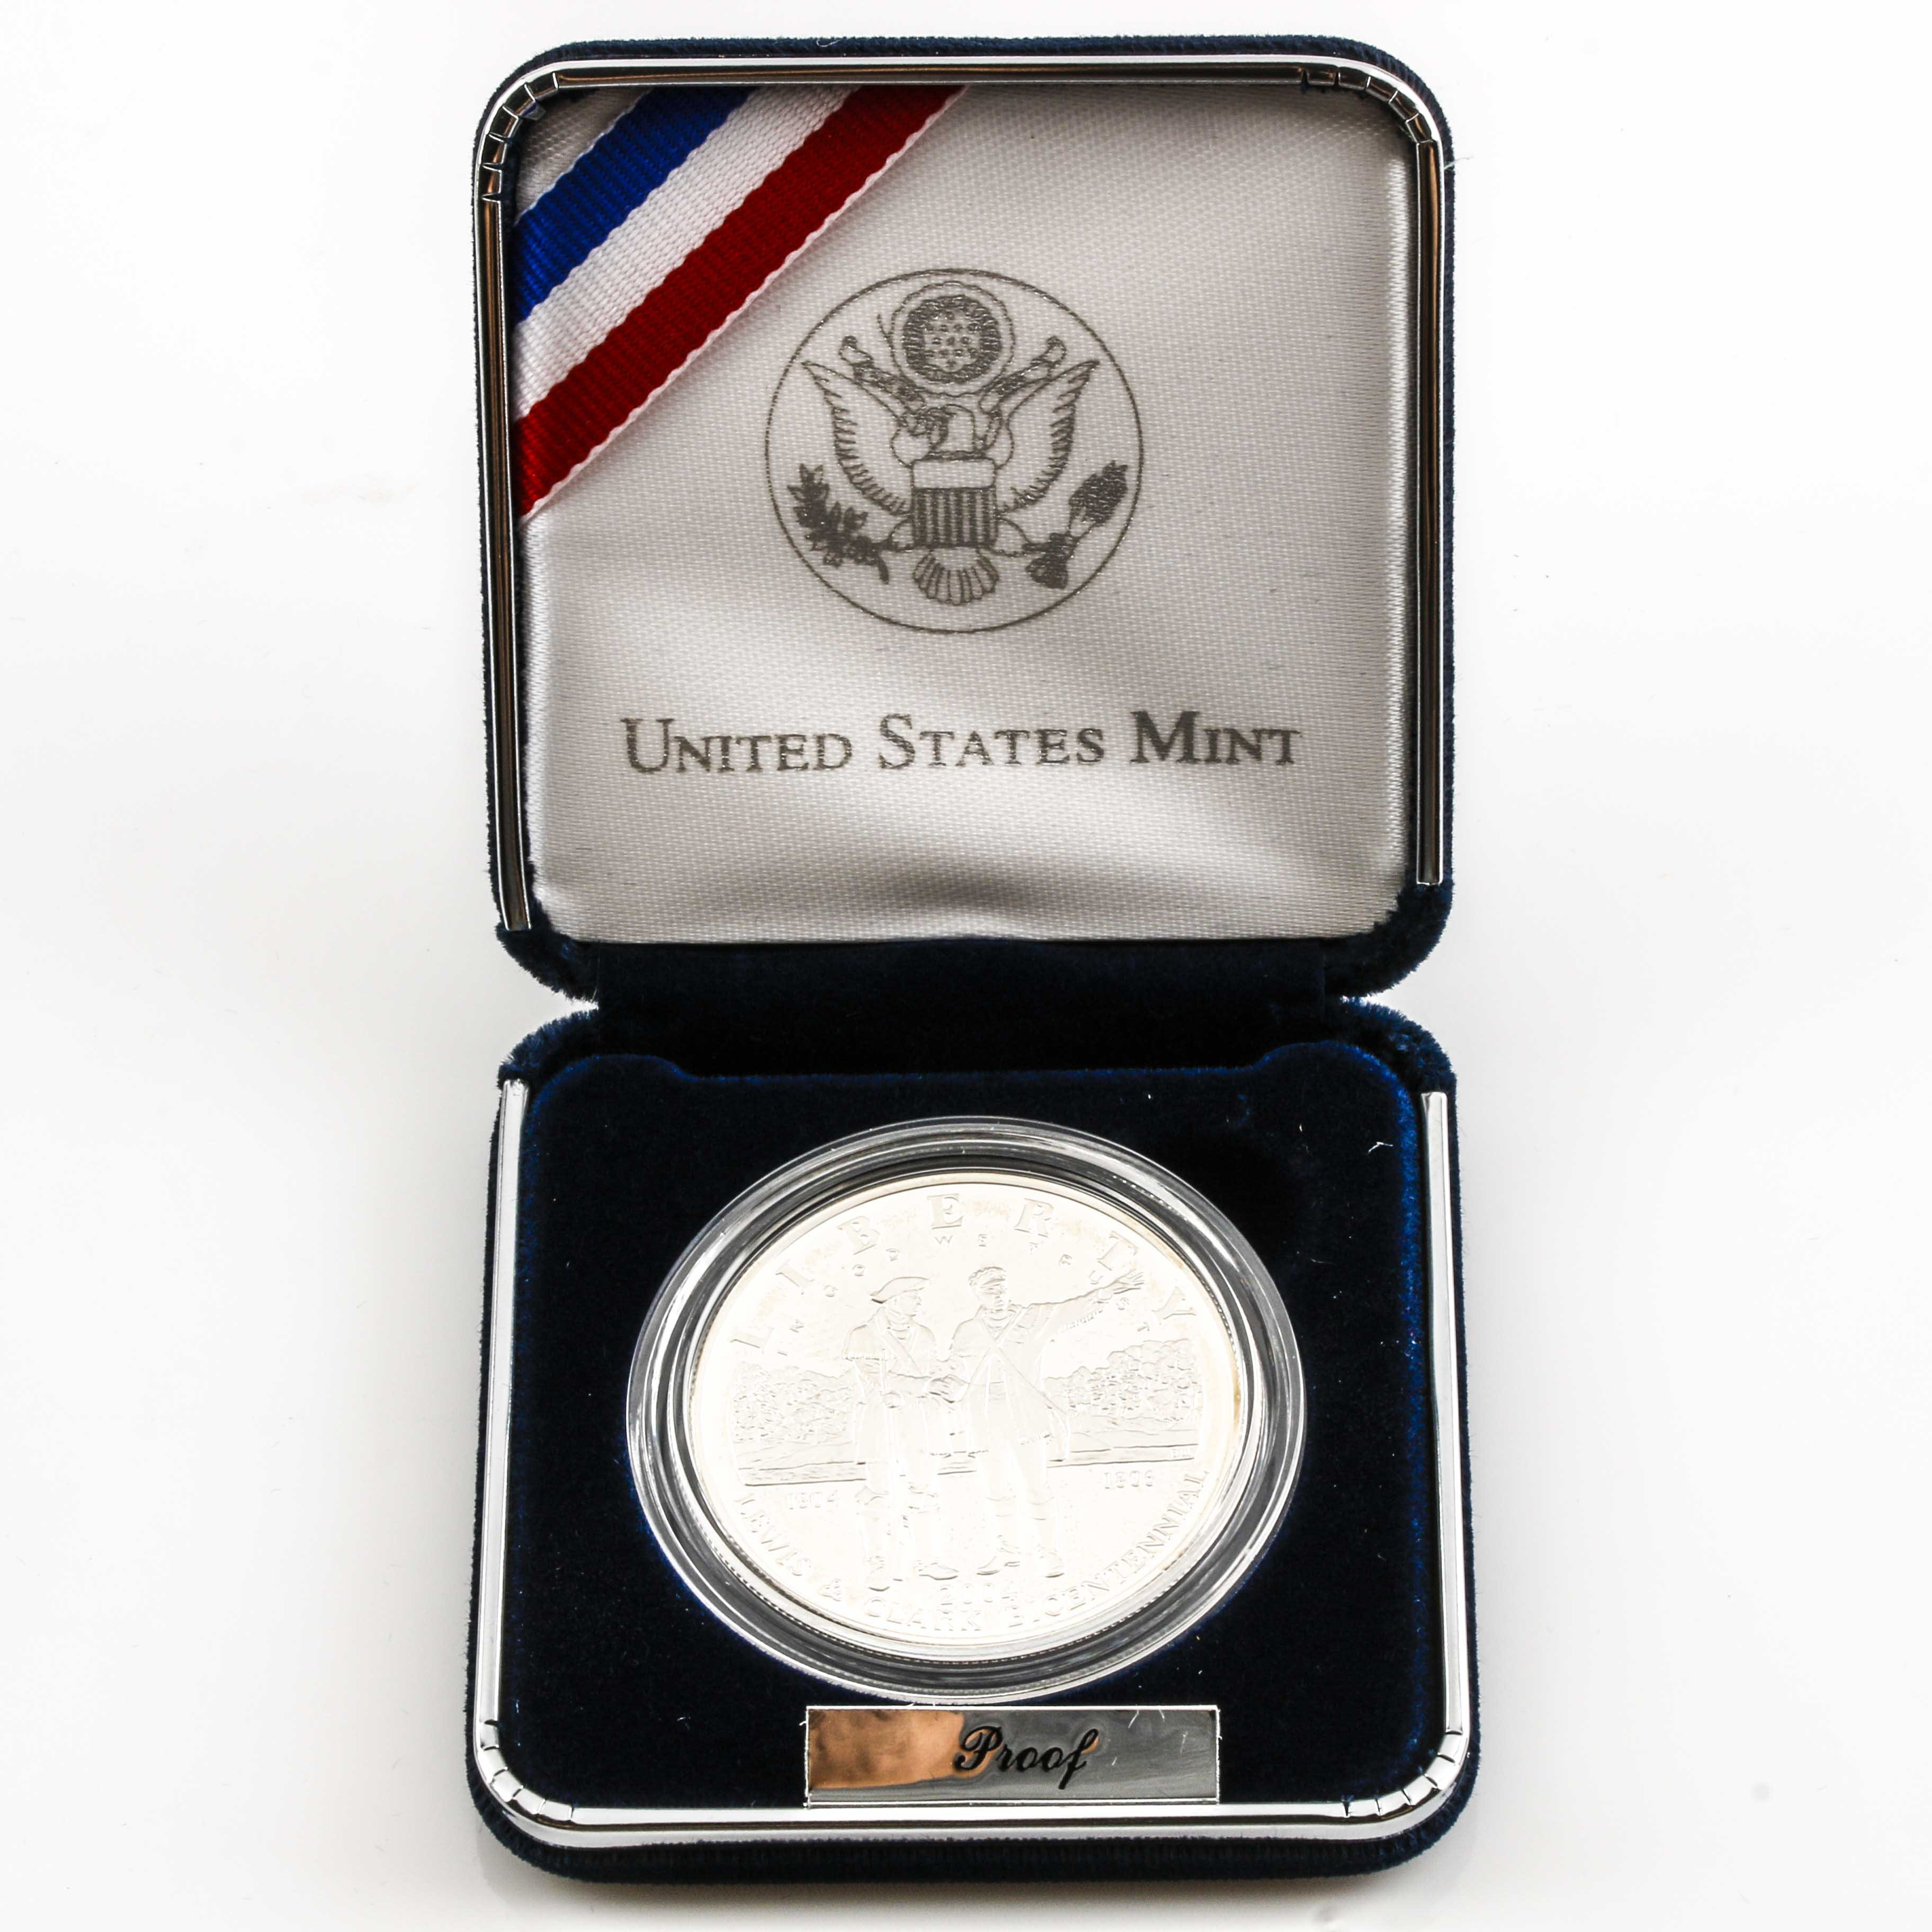 2004 P Lewis & Clark Commemorative Silver Dollar Proof Coin